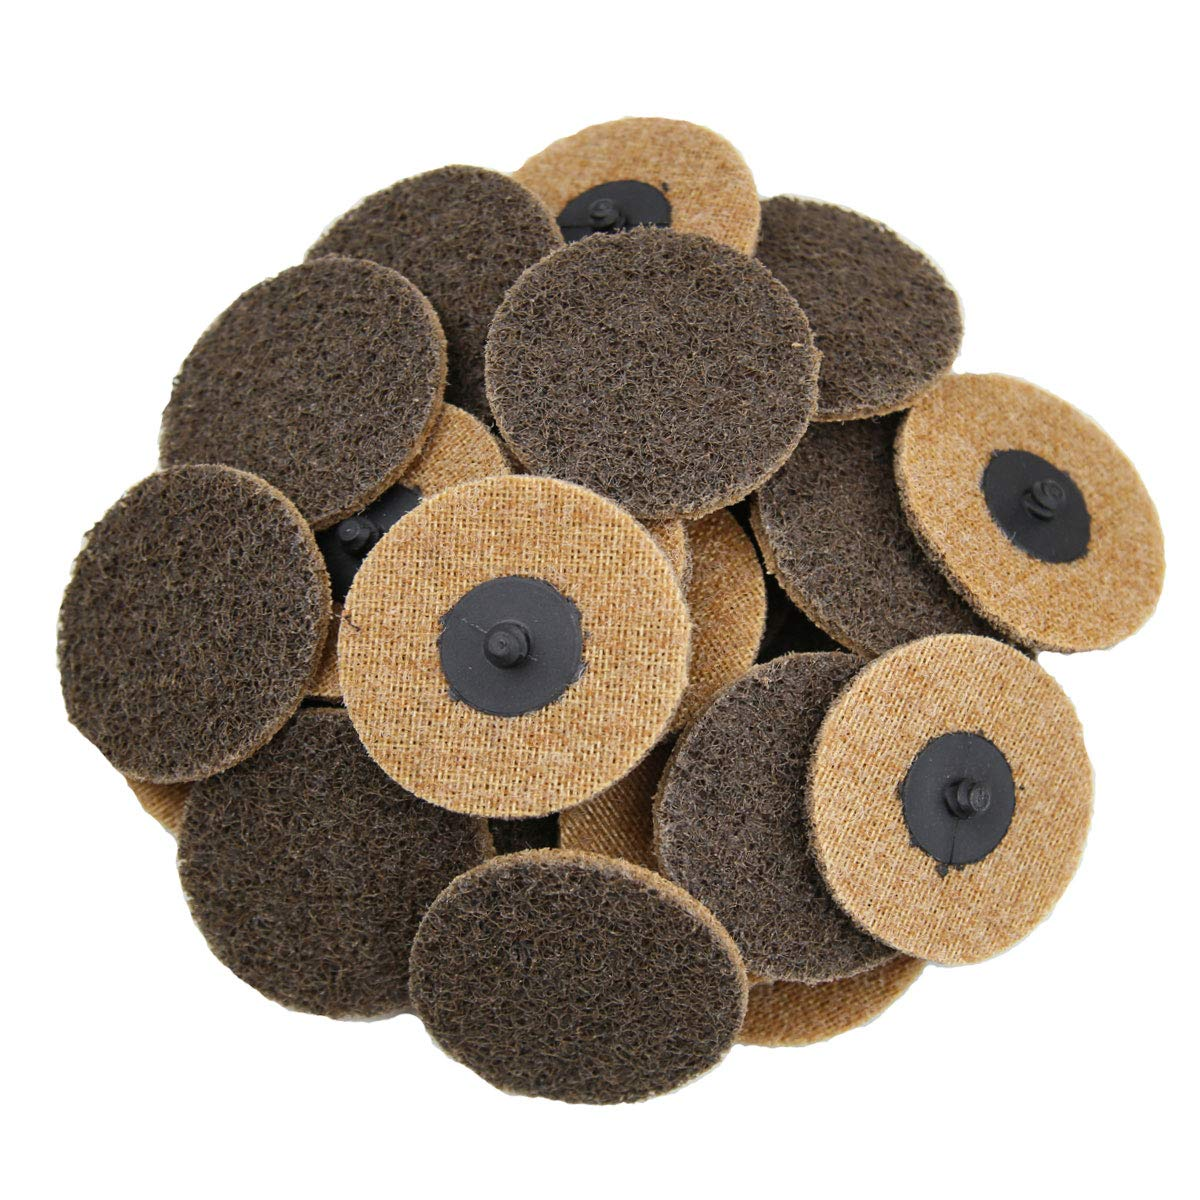 COSPOF 3 Inch Surface Conditioning Disc,Quick Change Sanding Disc,Works with Air and Electric Sander,Features Better Surface Quality and Heat Dissipation -25 Pack (Brown-Coarse). by COSPOF